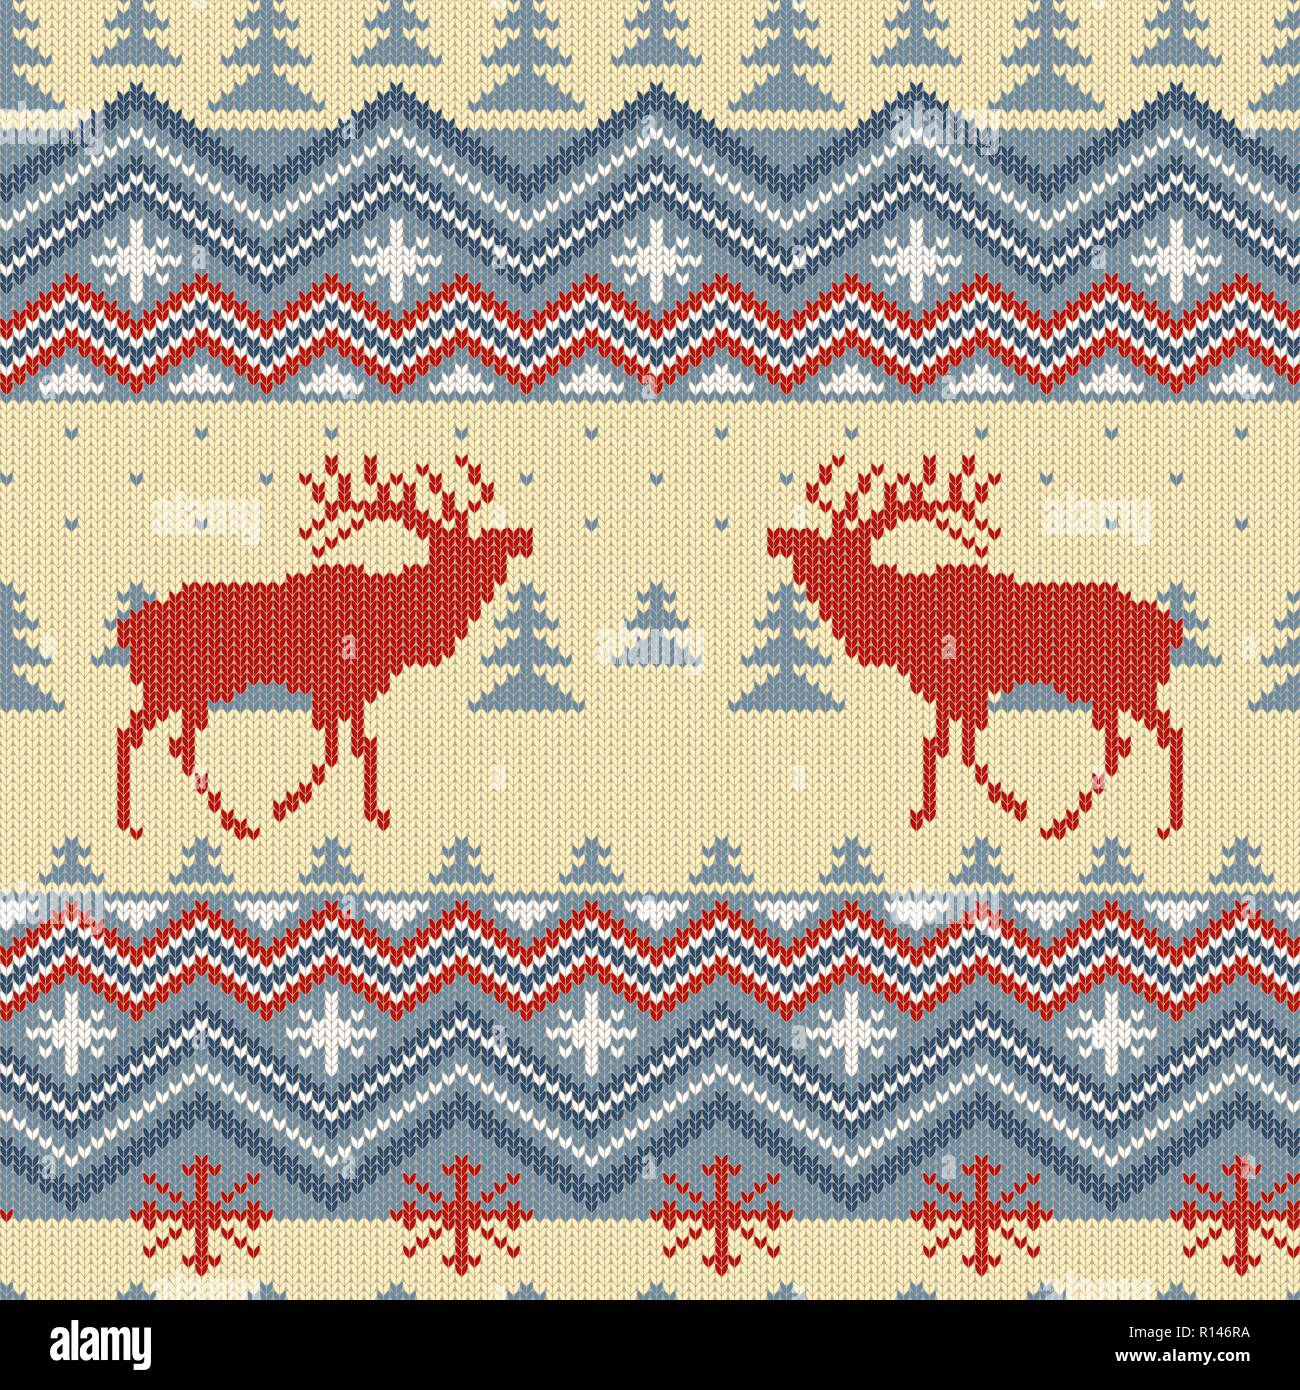 Winter knitted woolen seamless pattern with red deer in conifer forest - Stock Vector